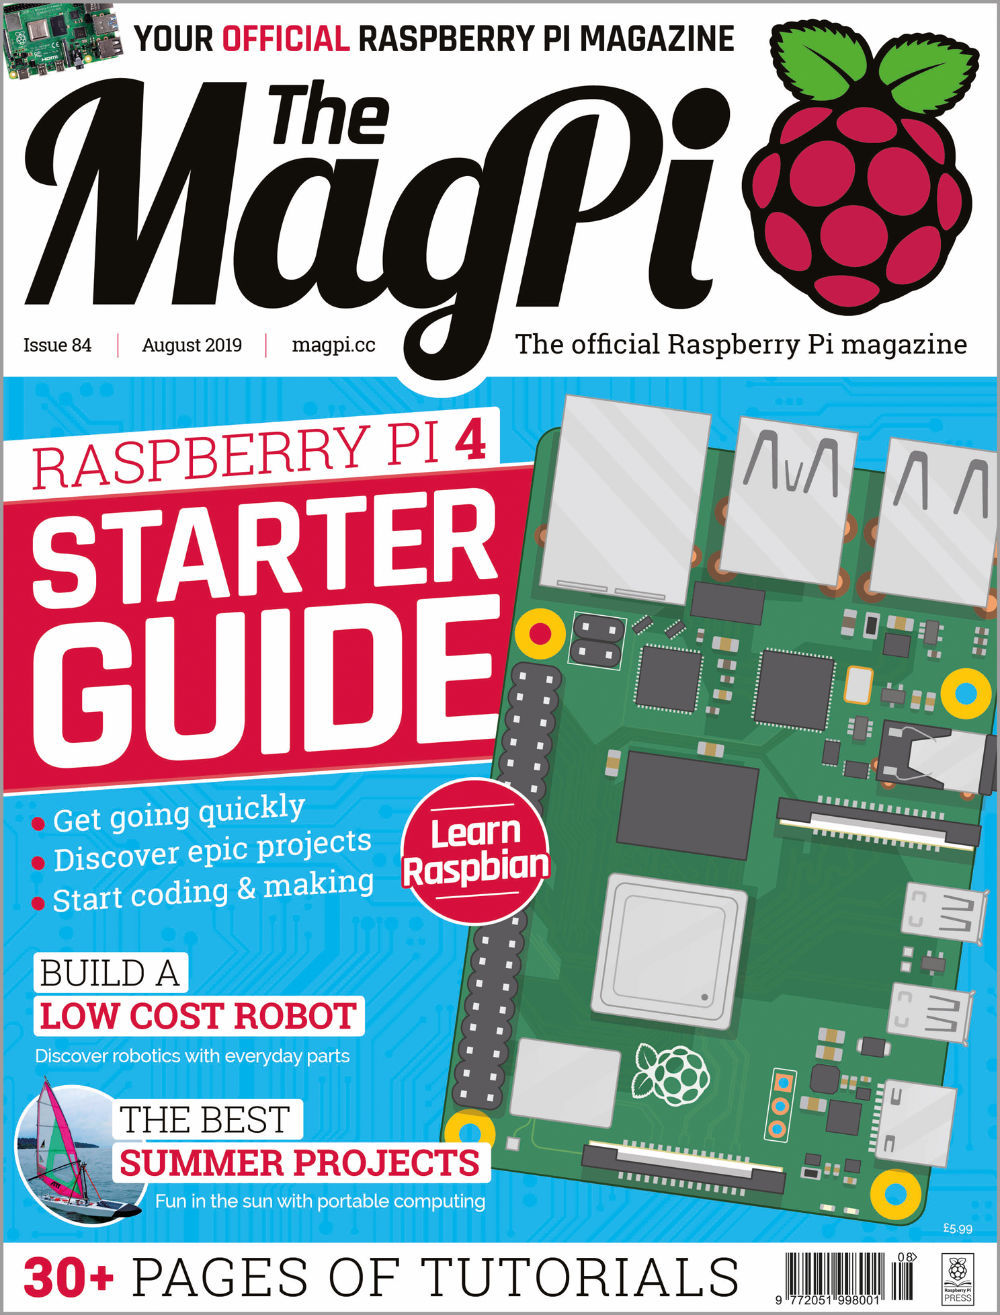 Raspberry Pi Blog - News, Announcements, and Ideas